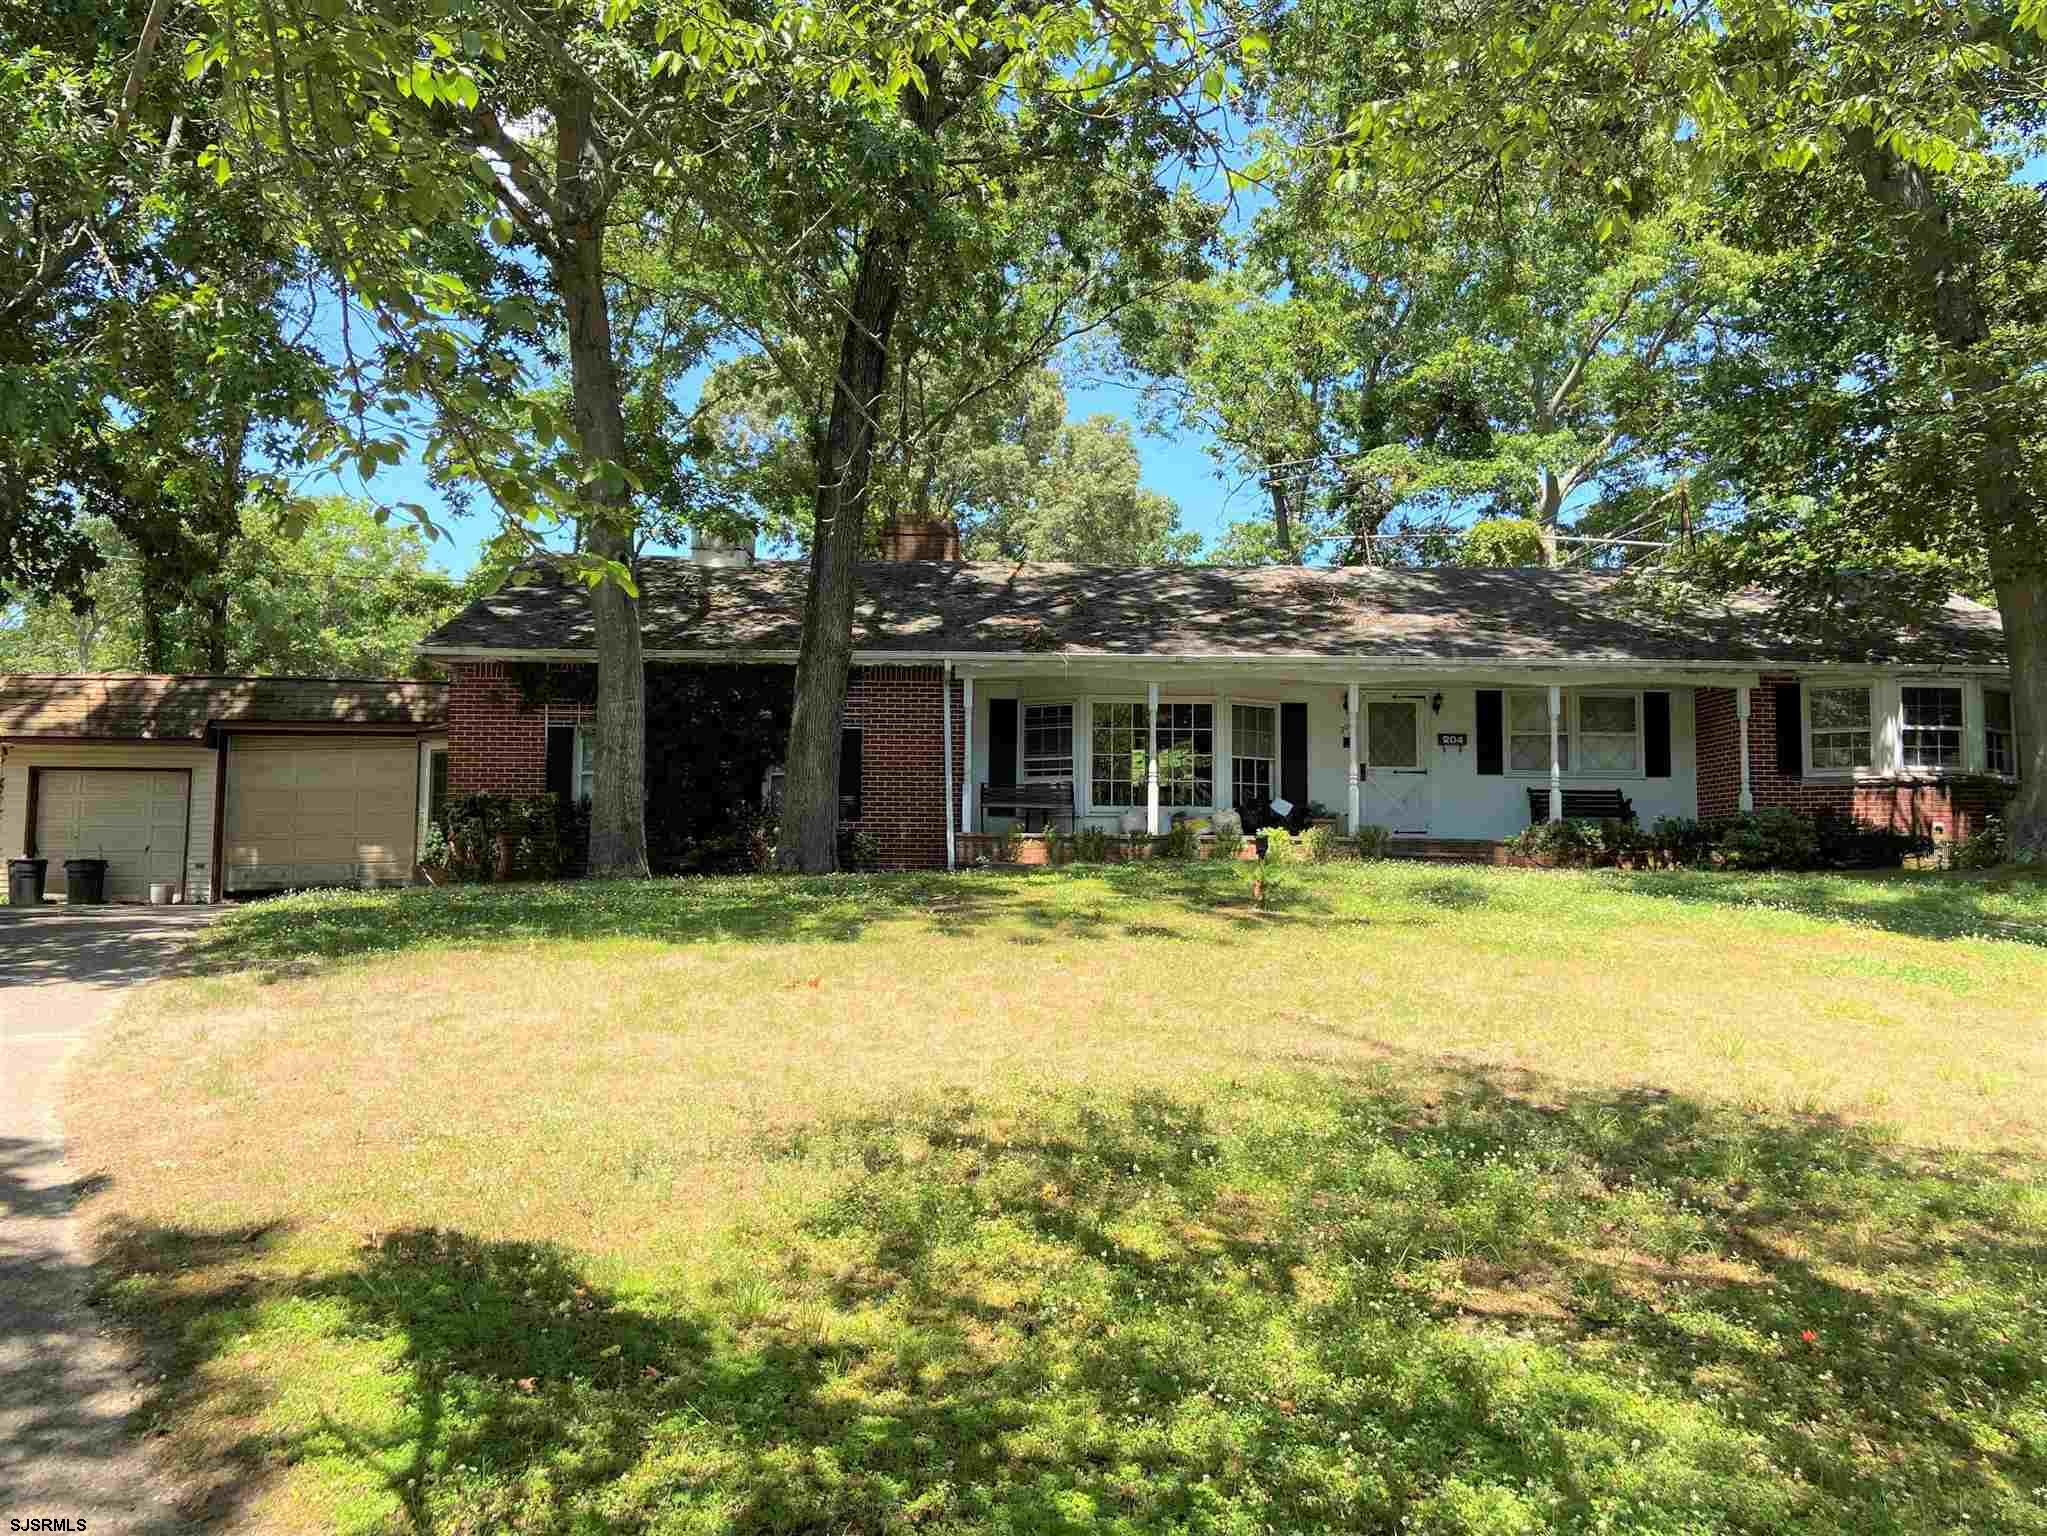 """Great location on a cul de sac. With an open mind and a vision this 3 BD 1.5 BA rancher has great potential. There are original hardwood floors throughout in good condition. There is a sunken living room, dining room, kitchen and a family room with a brick fireplace. There is also a large screened in porch off the family room for addl living space. Added bonus is the separate entrance (in law quarters) which consists of a living room, kitchen, 1 BD and a FULL BA upstairs. Outside features an oversized lot and a 2 car detached garage. This home is completely """"AS IS"""",  the buyer will be responsible for any and all inspections & certifications. Seller will need a minimum of 60 to 90 days to vacate the premises. This may be negotiable though."""